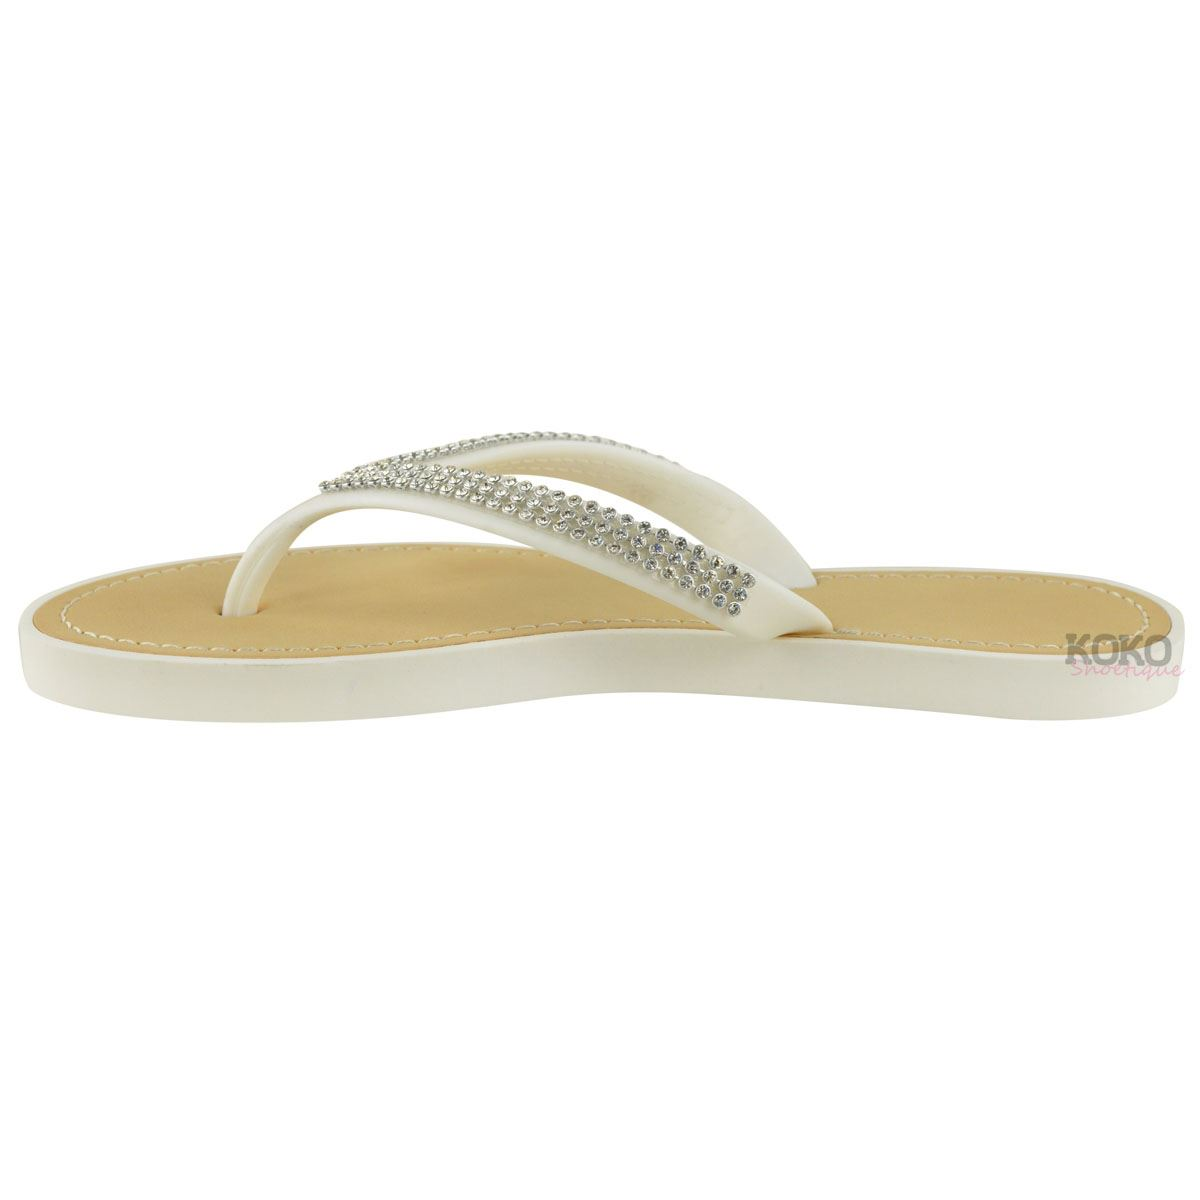 NEW-JELLY-SANDALS-WOMENS-LADIES-DIAMANTE-SUMMER-HOLIDAY-COMFORTS-FLIP-FLOPS-SIZE thumbnail 35